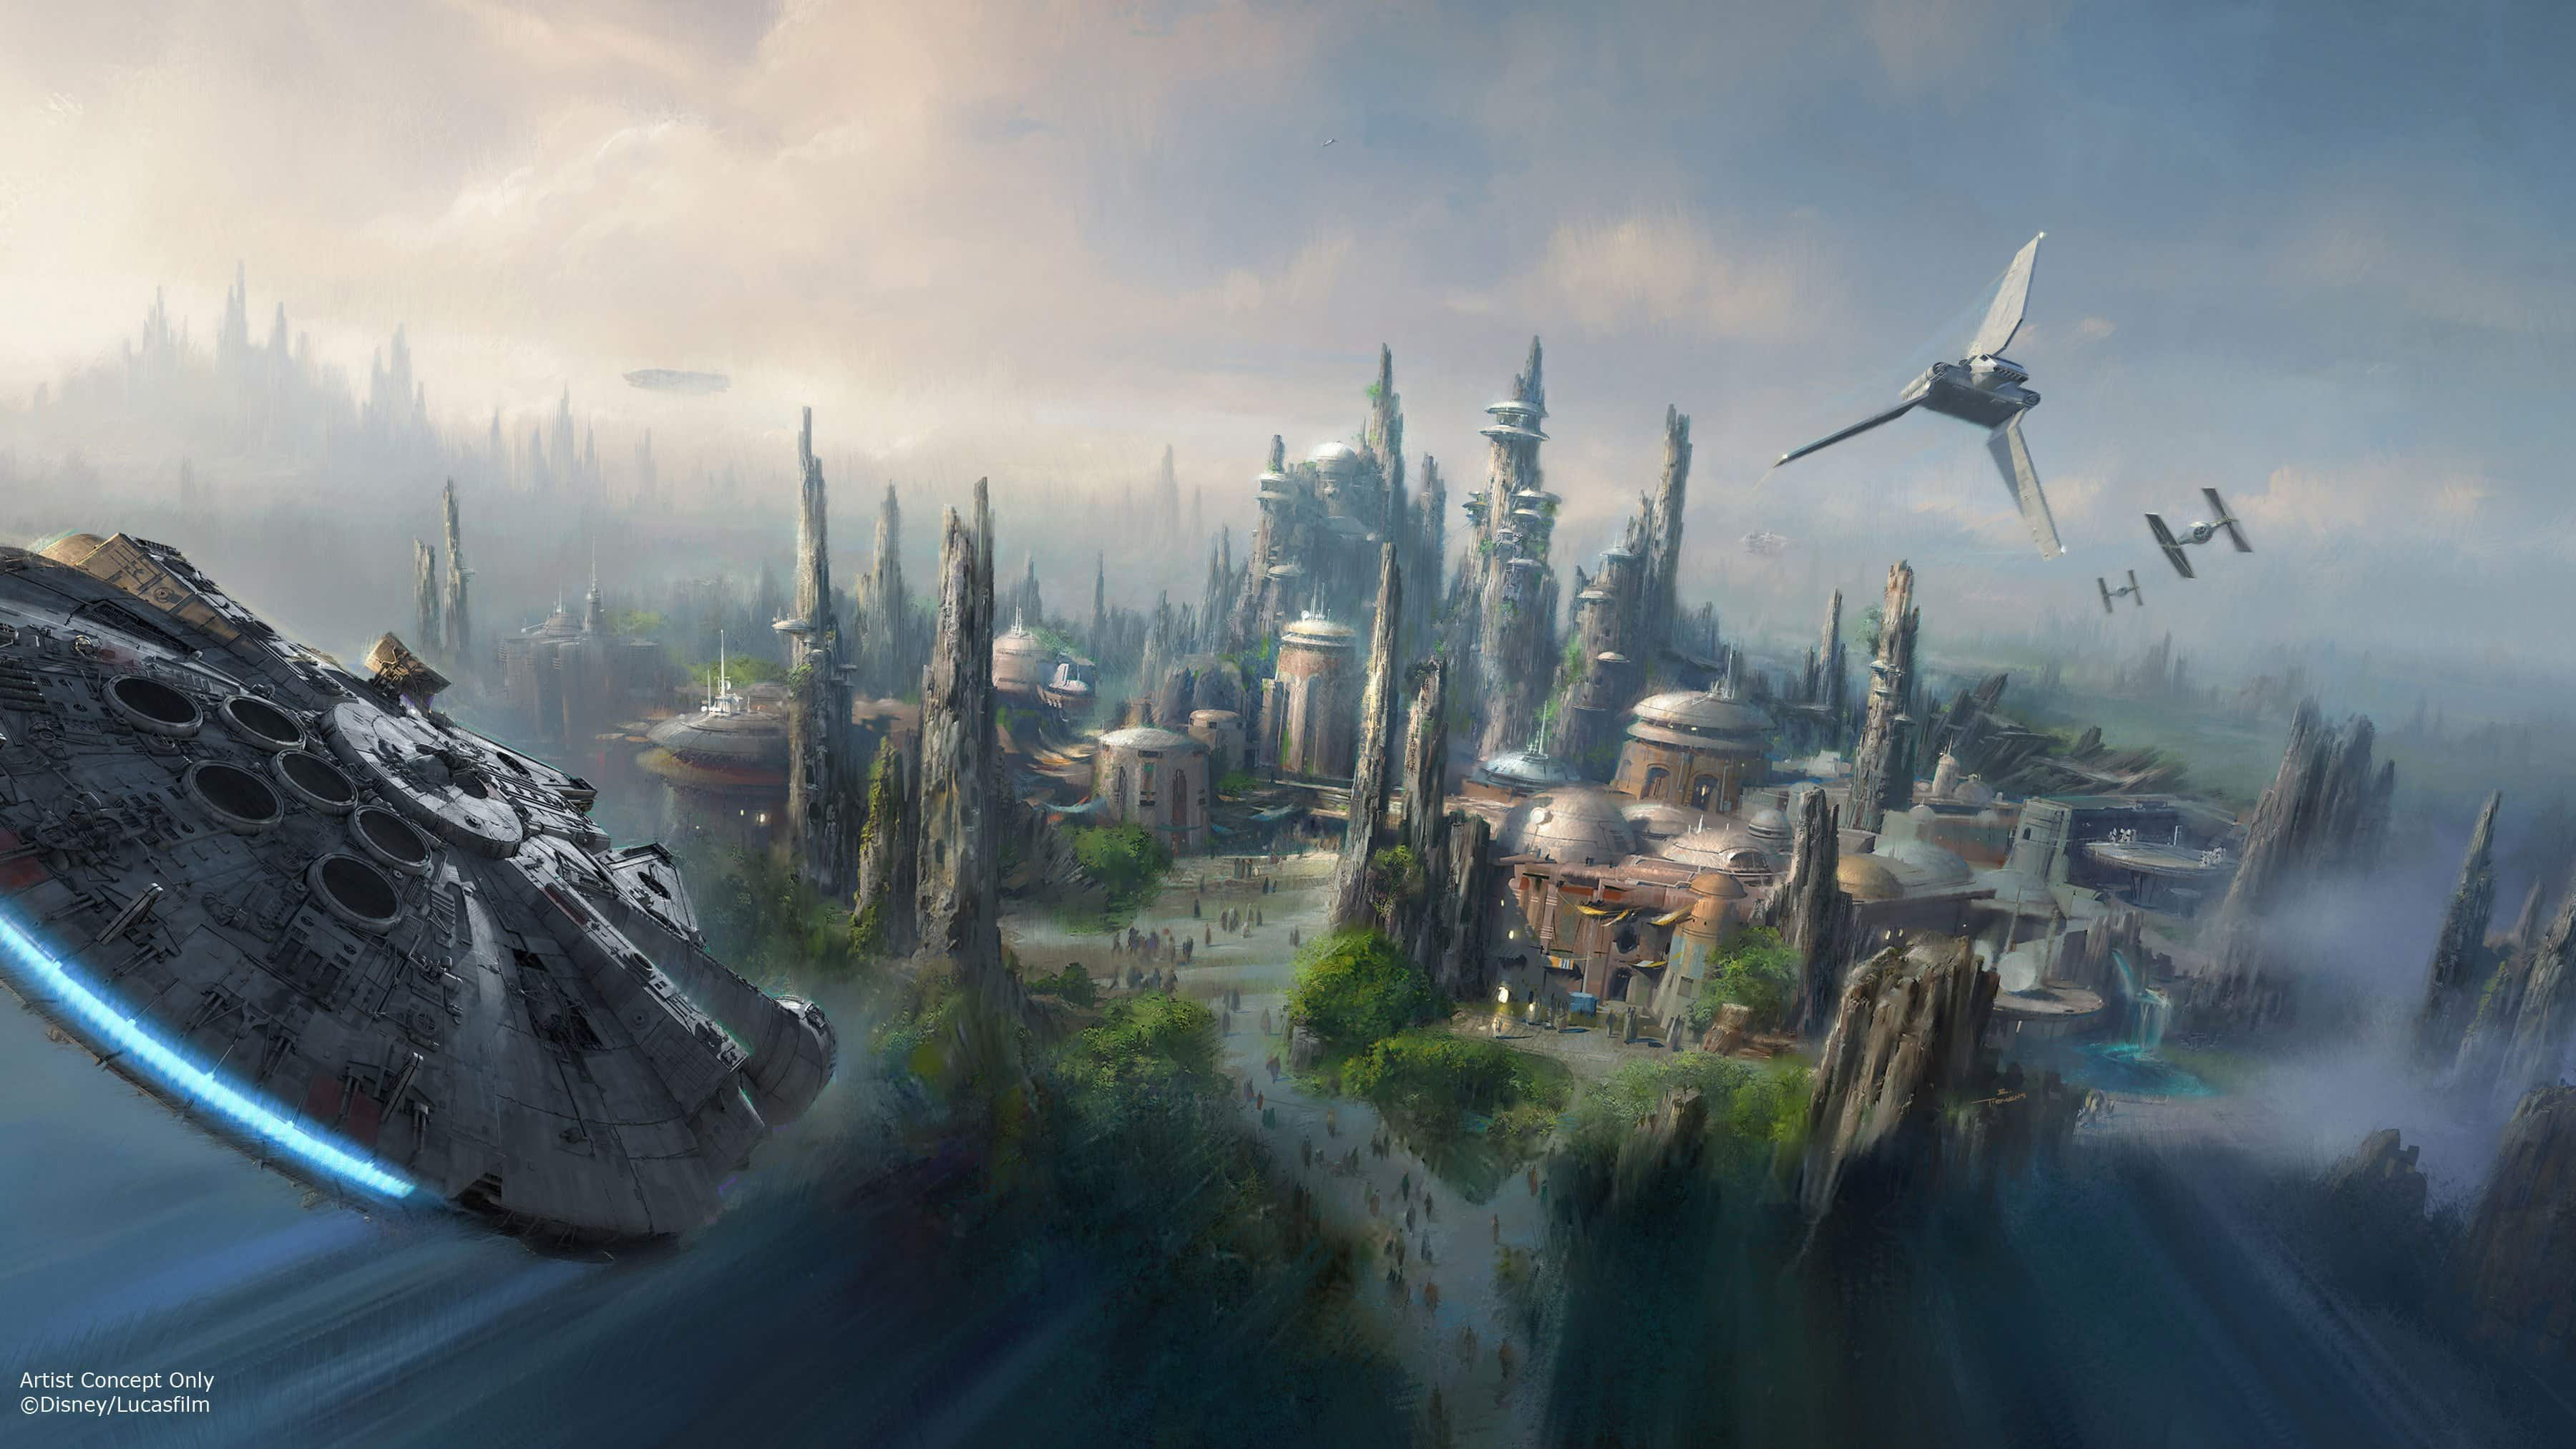 Disney World's Star Wars Land is already shaping up!